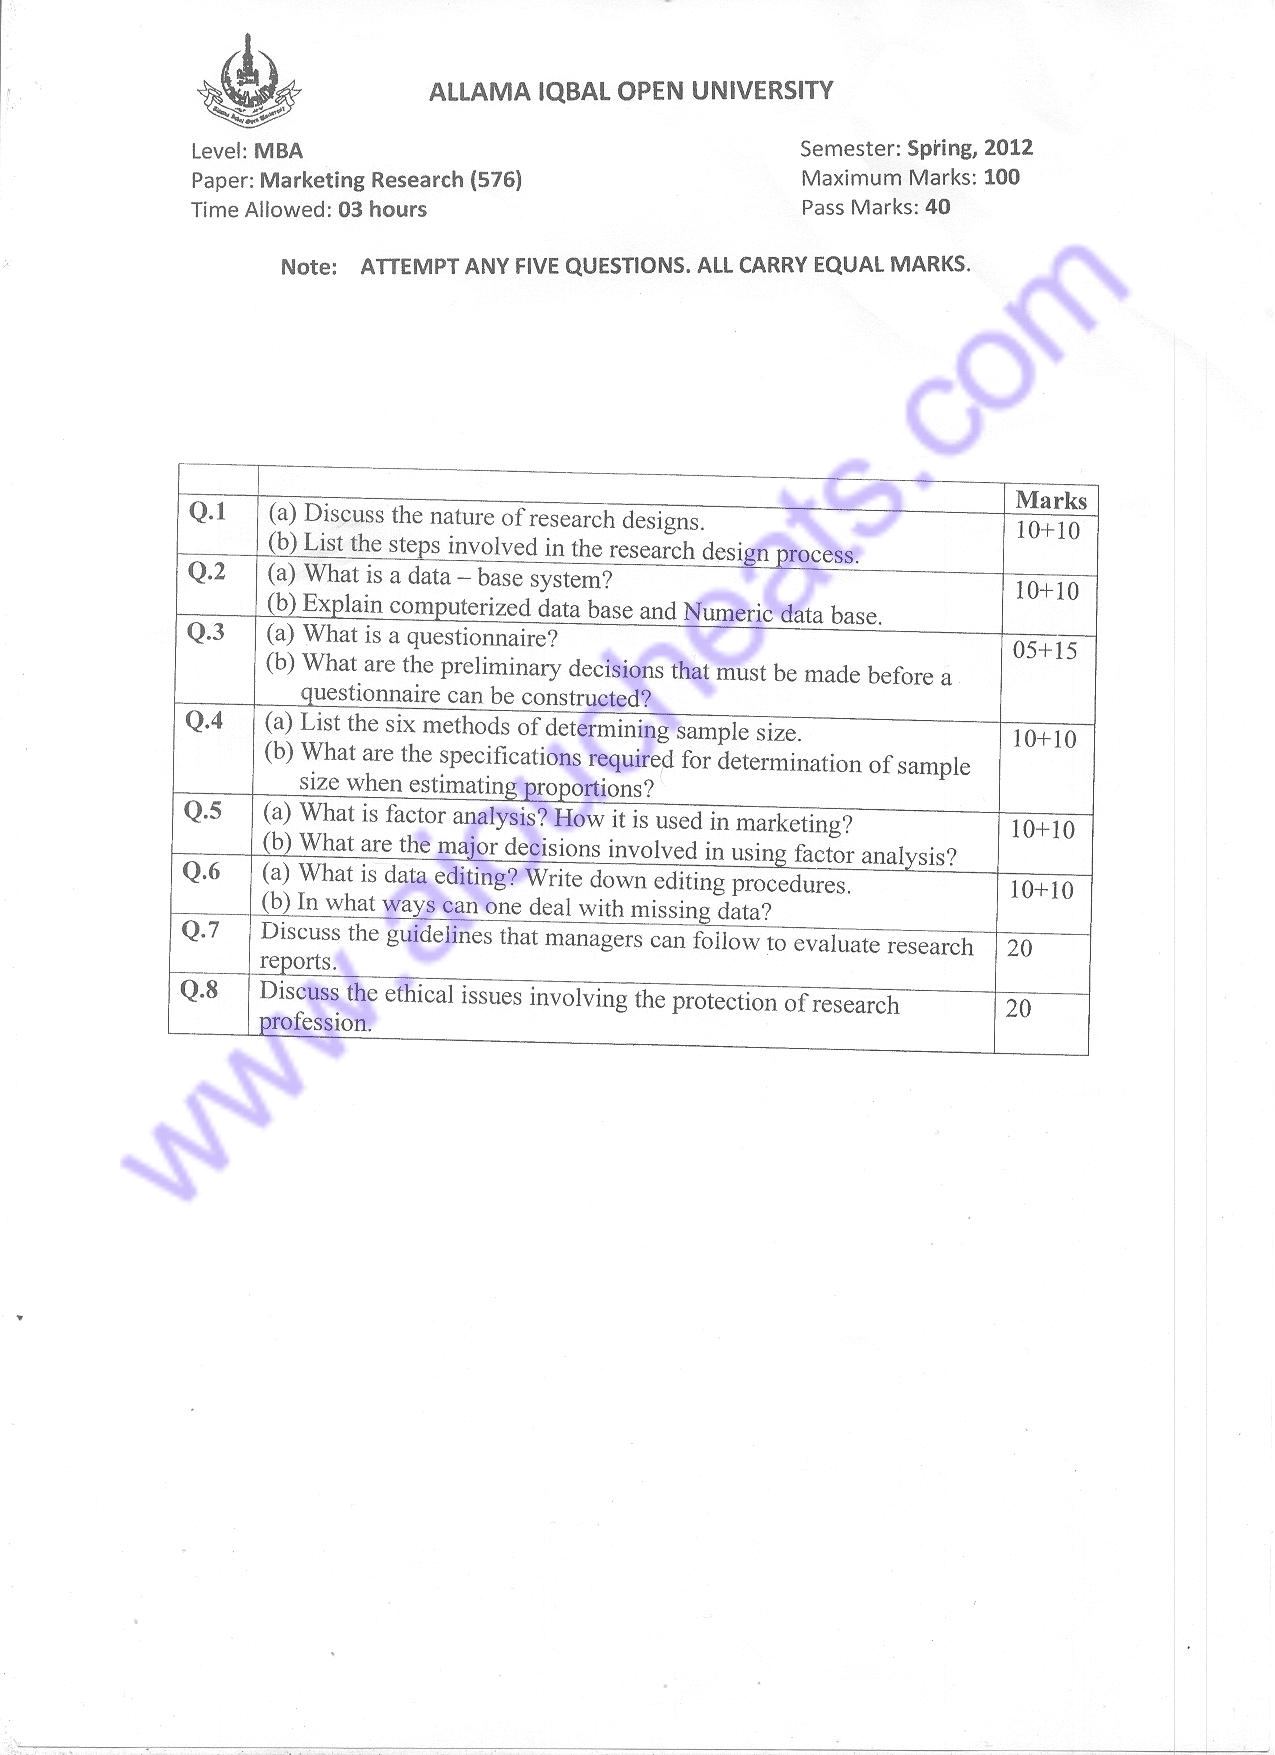 AIOU Old Papers Spring 2012 Free available here,AIOU MBA